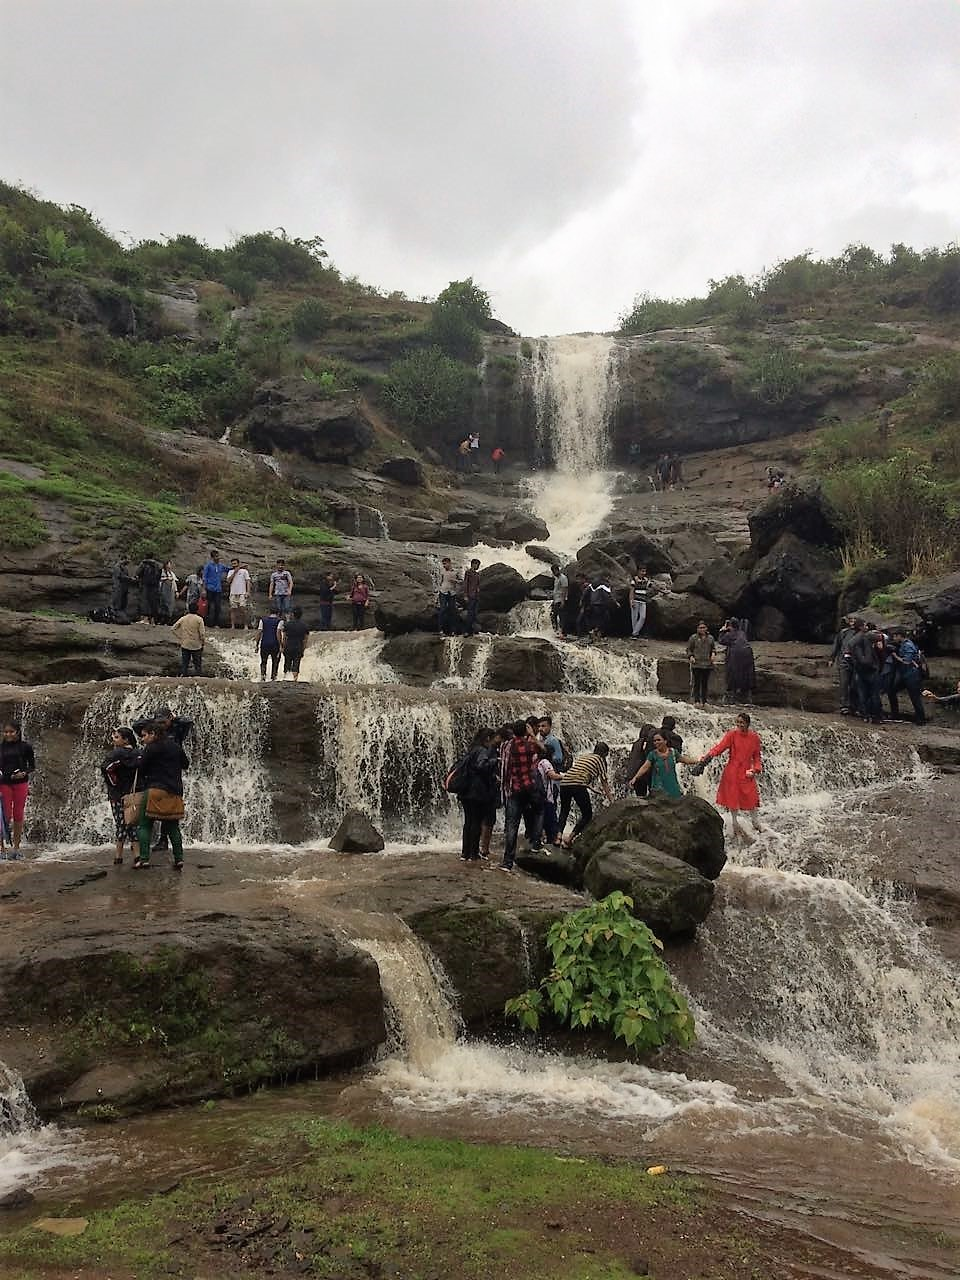 Visapur Waterfall